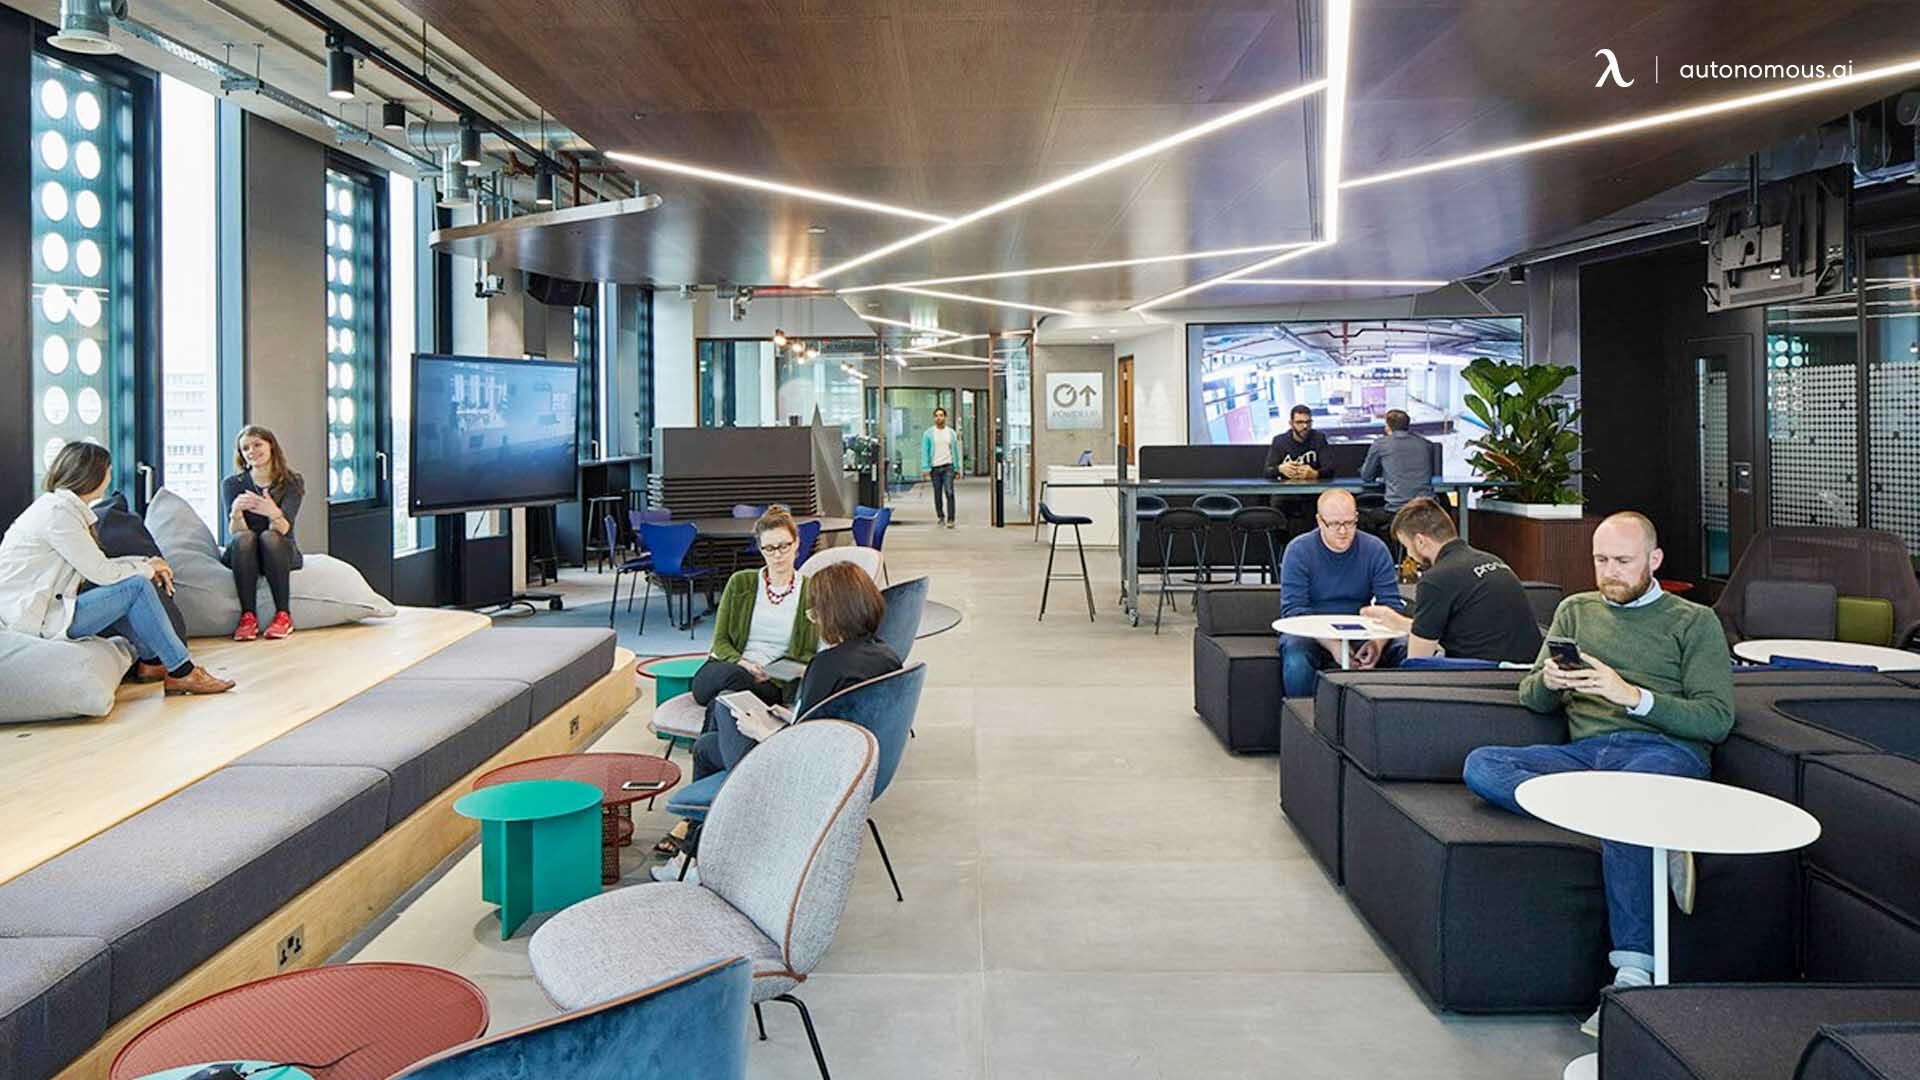 The hot desking modern office: What is it?